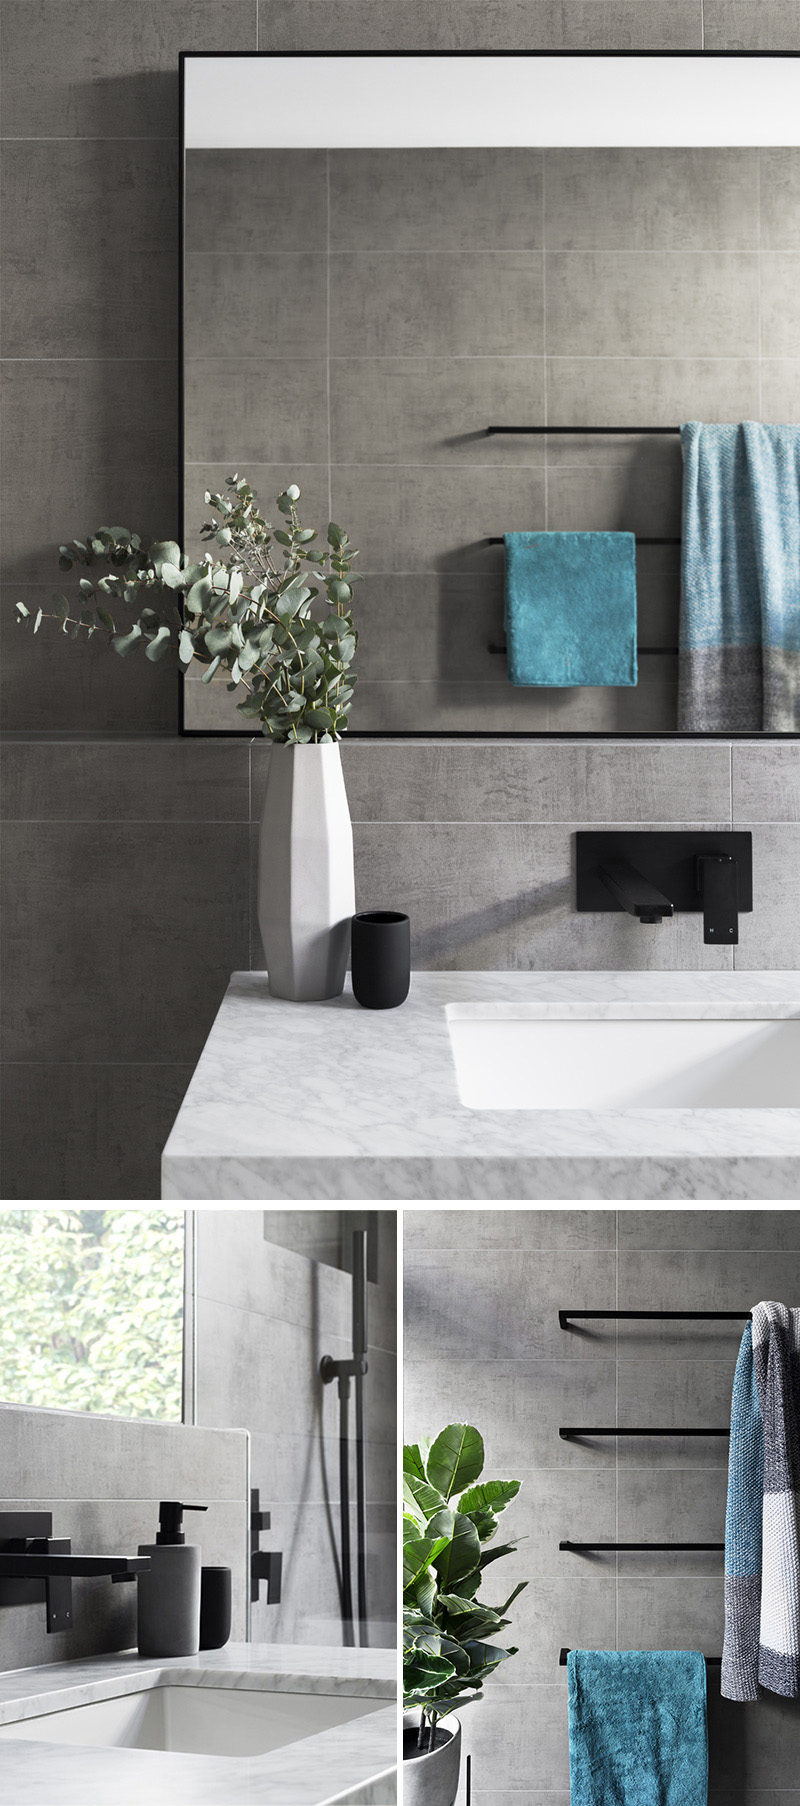 What Colour Towels Goes With Grey Tiles In Bathroom